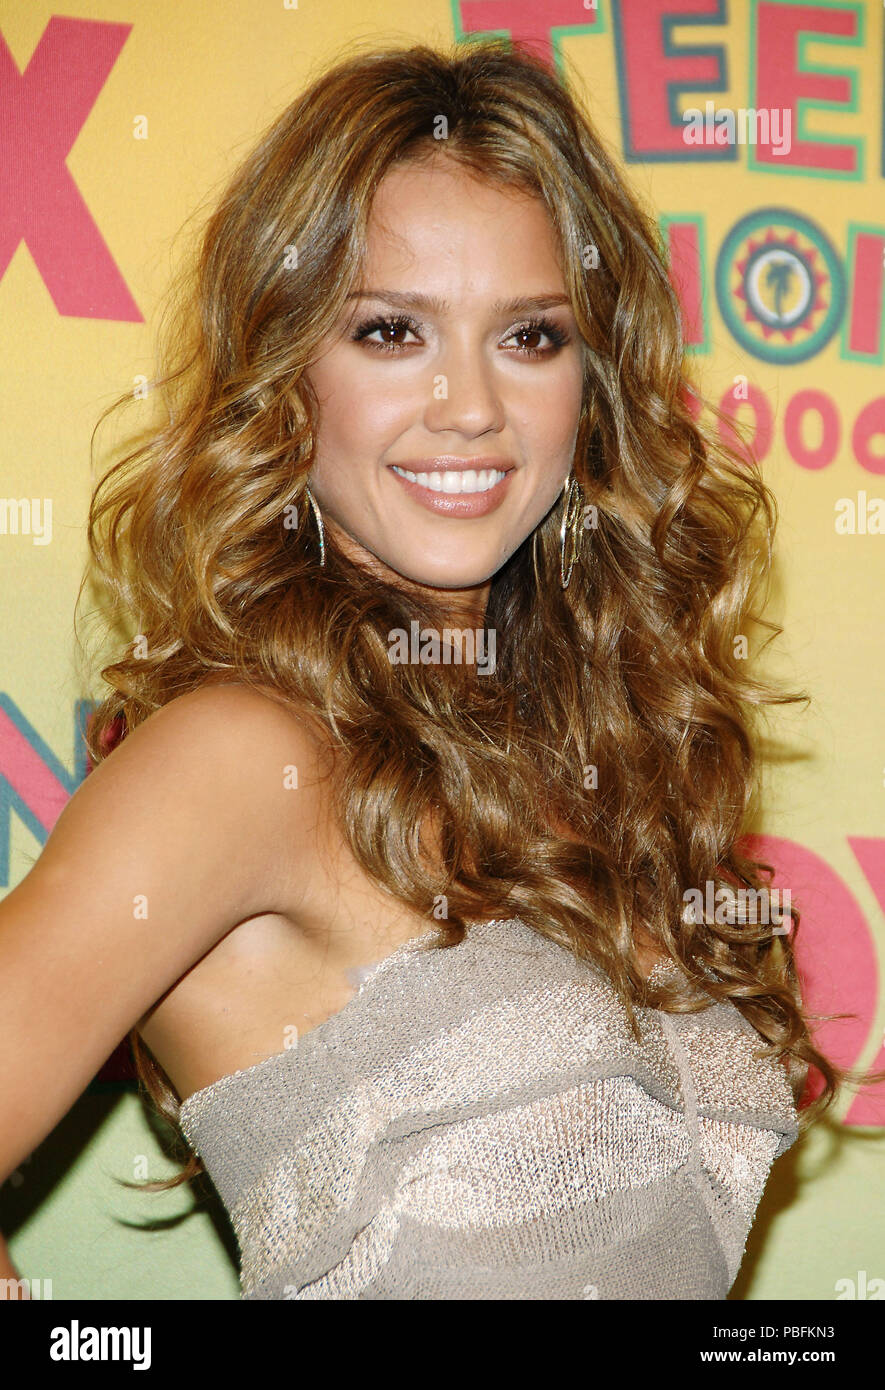 Amanda Swisten Wiki 01 august 20 stock photos & 01 august 20 stock images - alamy